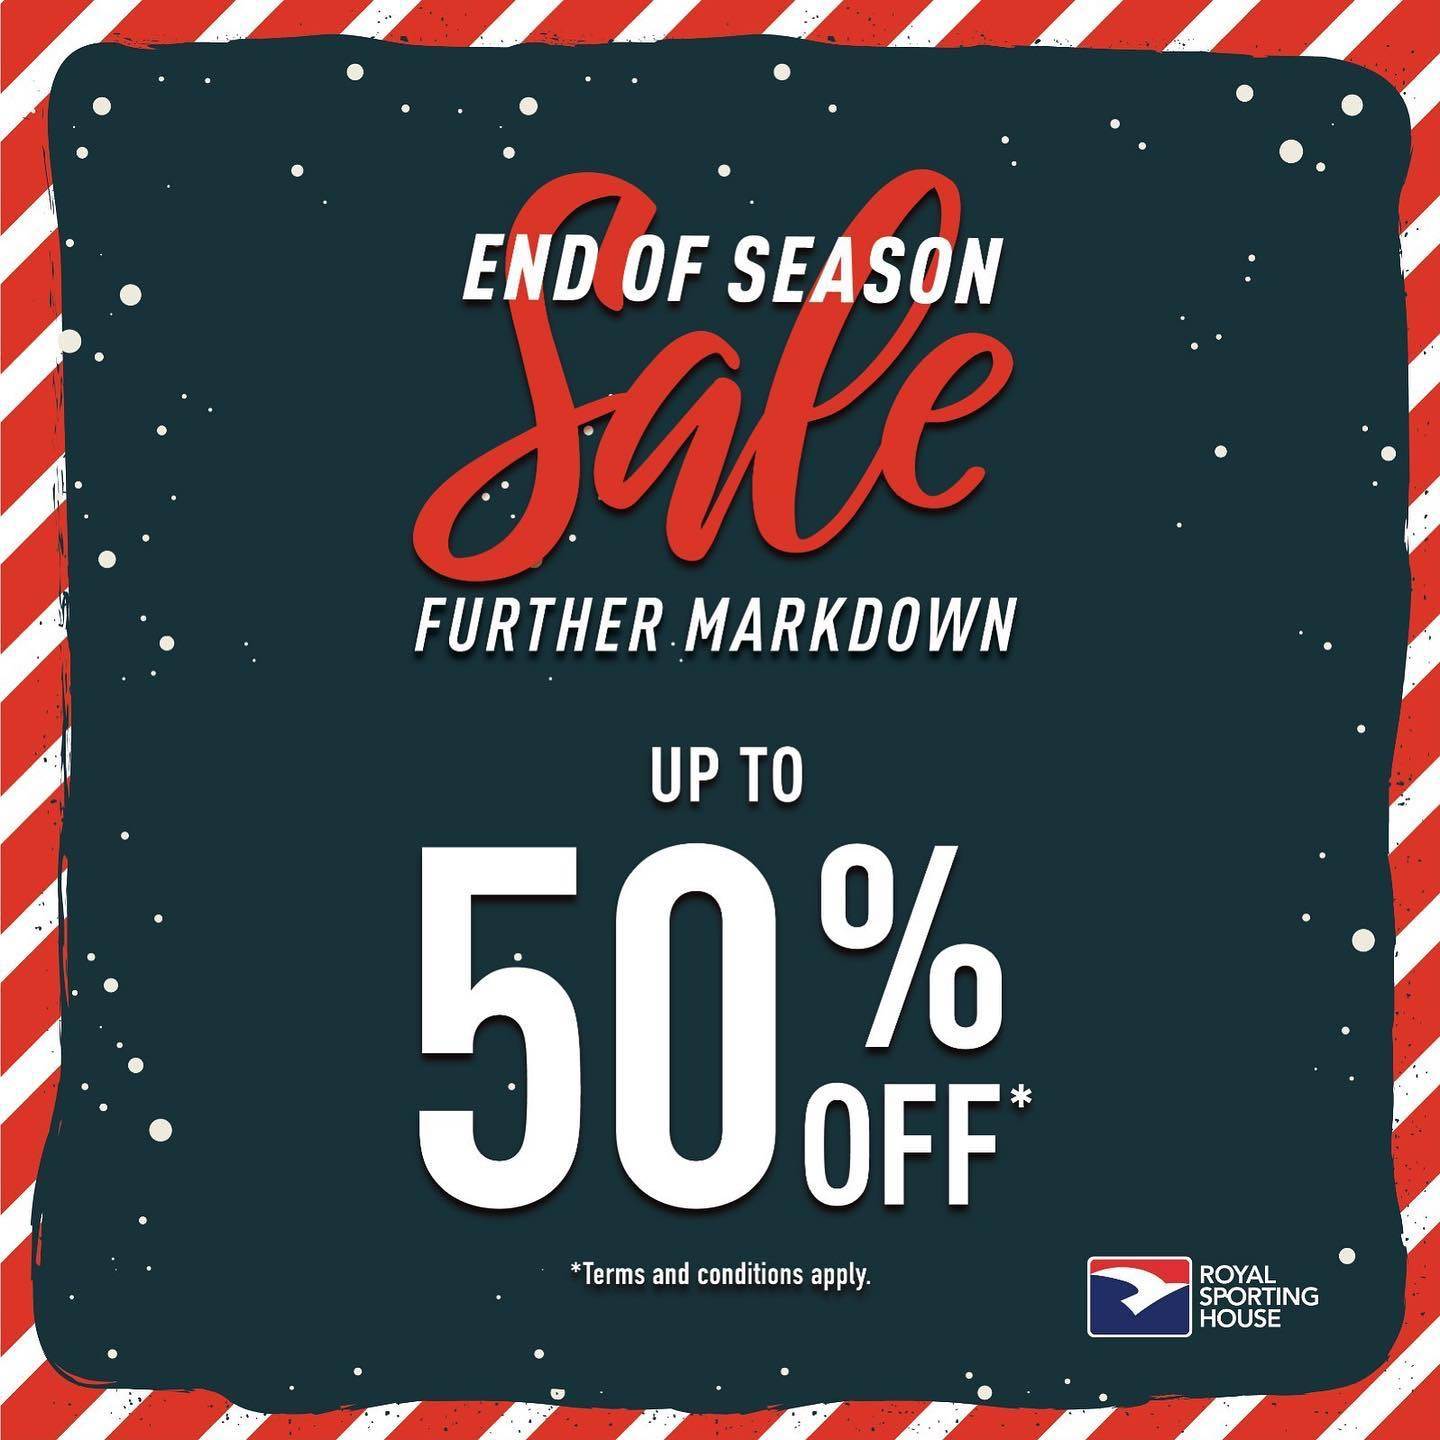 Royal Sporting House SG End of Season Sale Up to 50% Off Promotion   Why Not Deals & Promotions